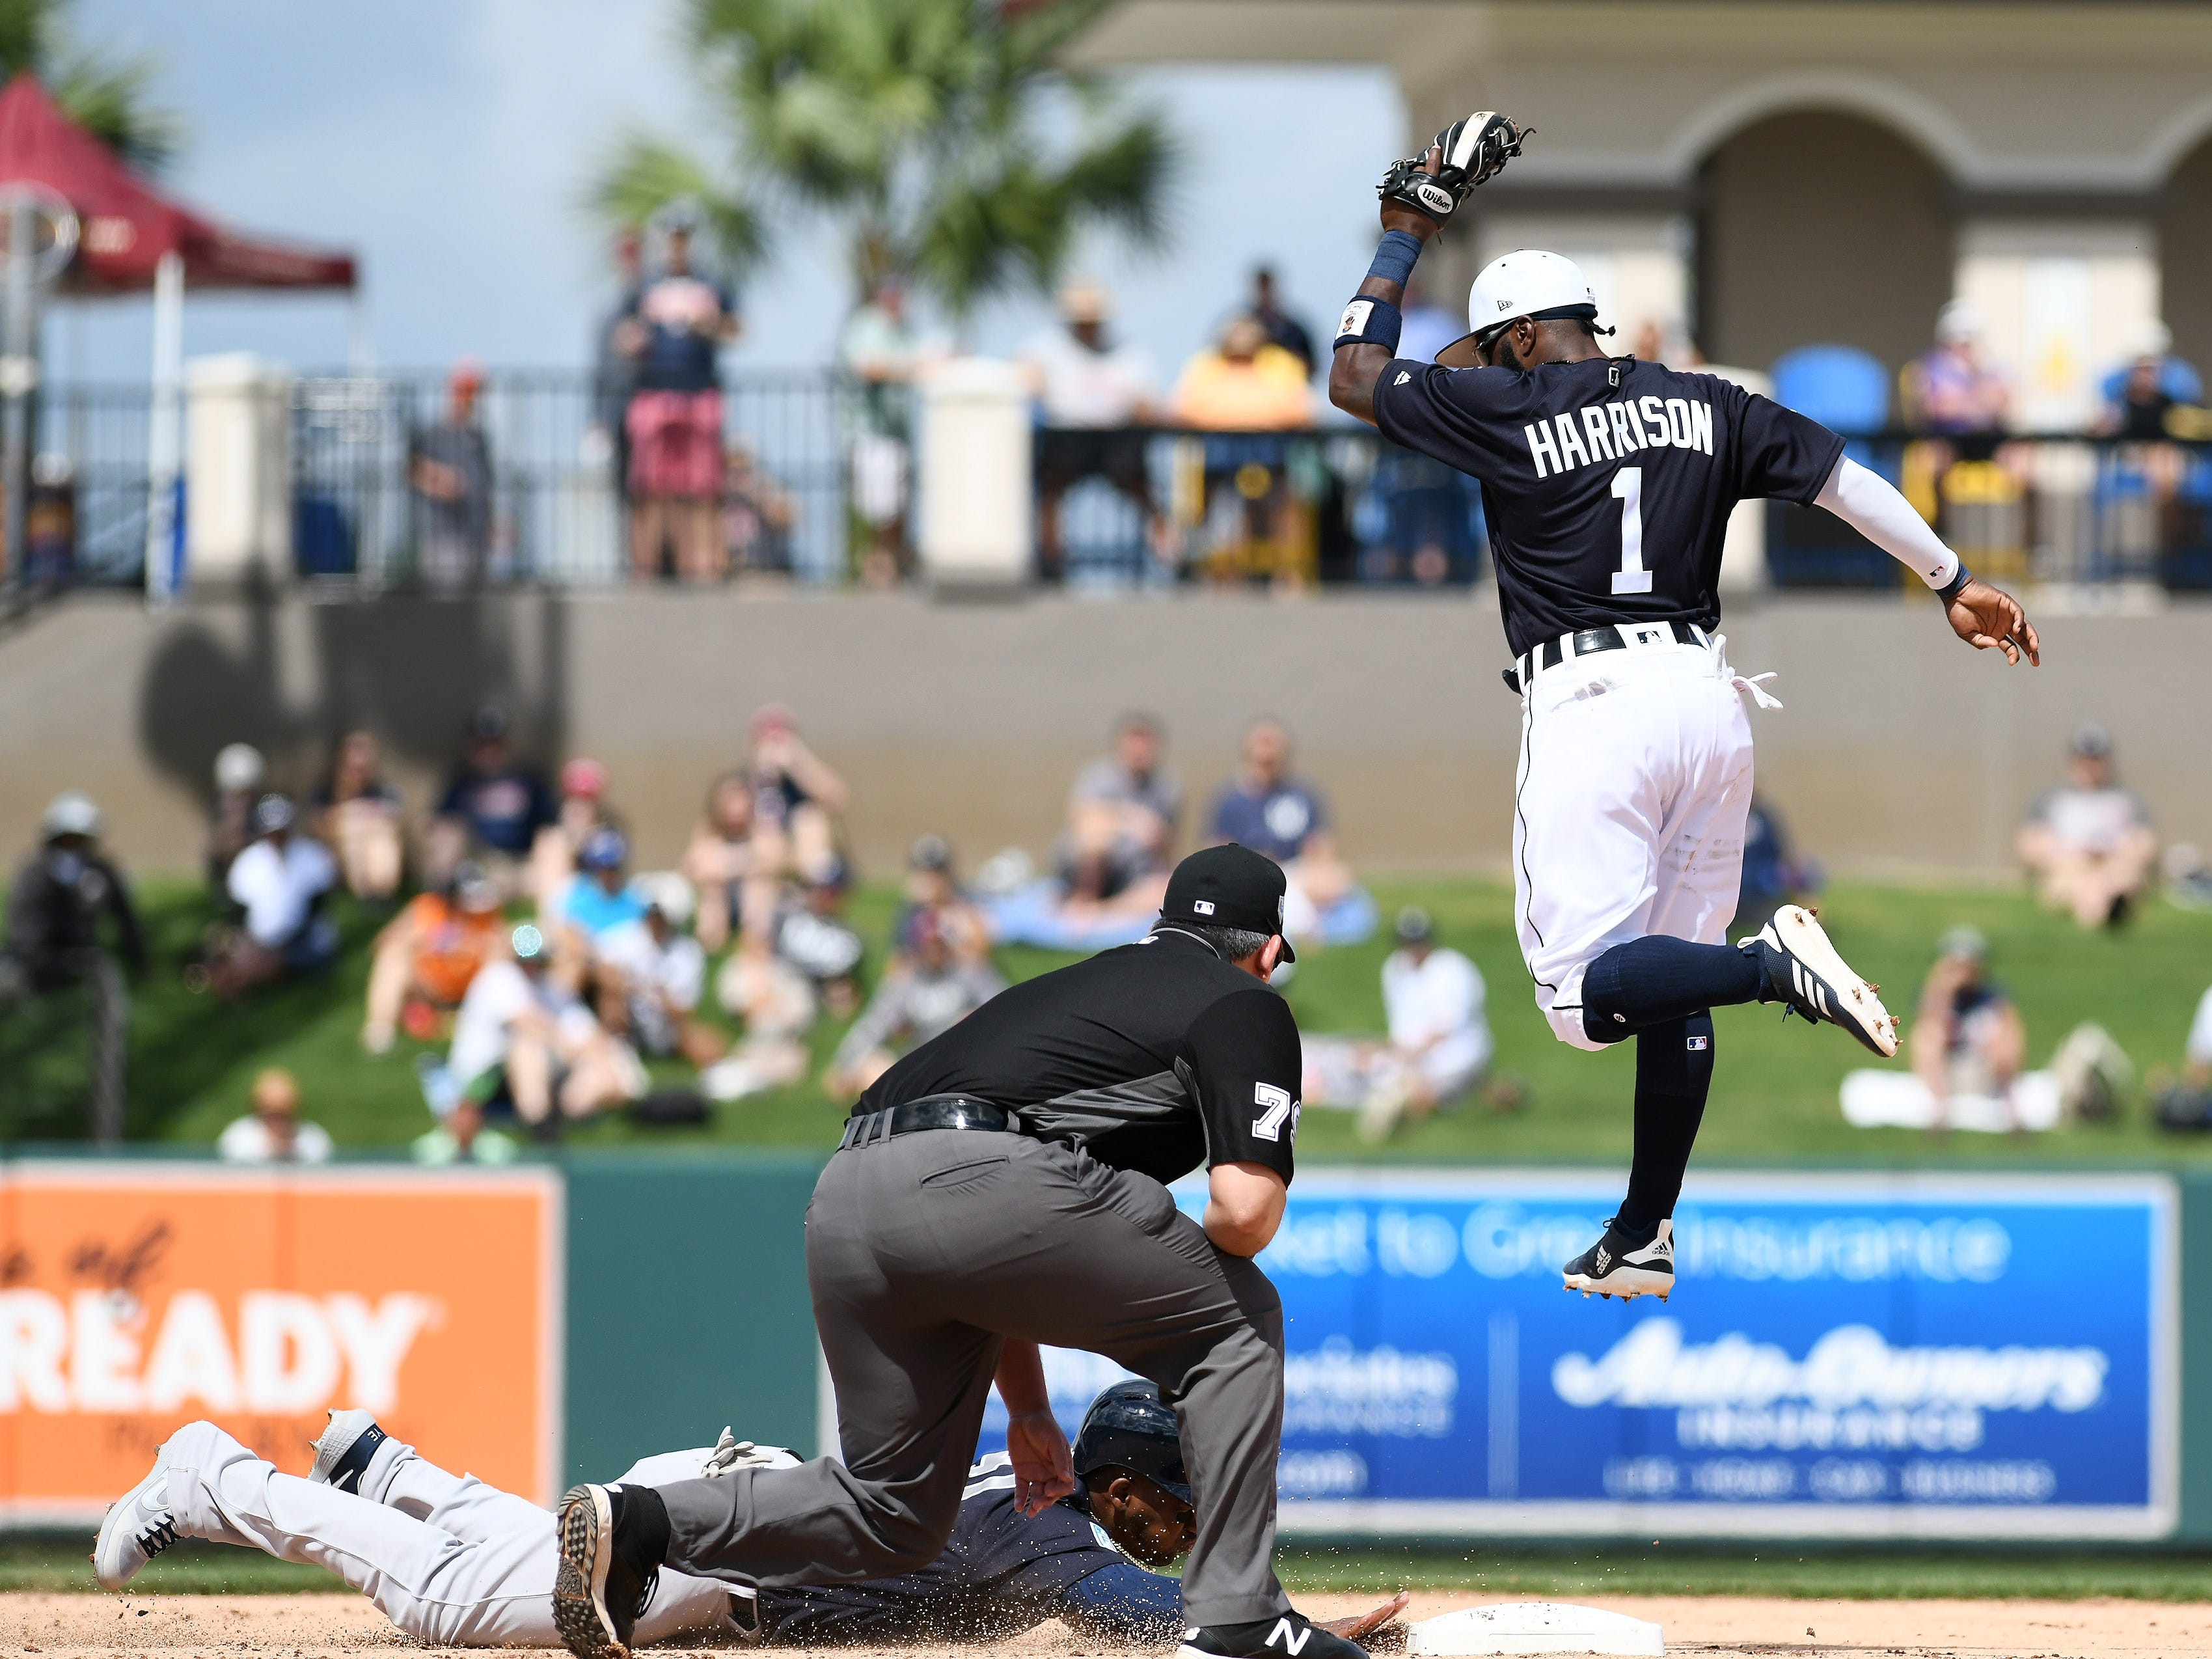 Tigers second baseman Josh Harrison goes airborne to catch a throw in the first inning.